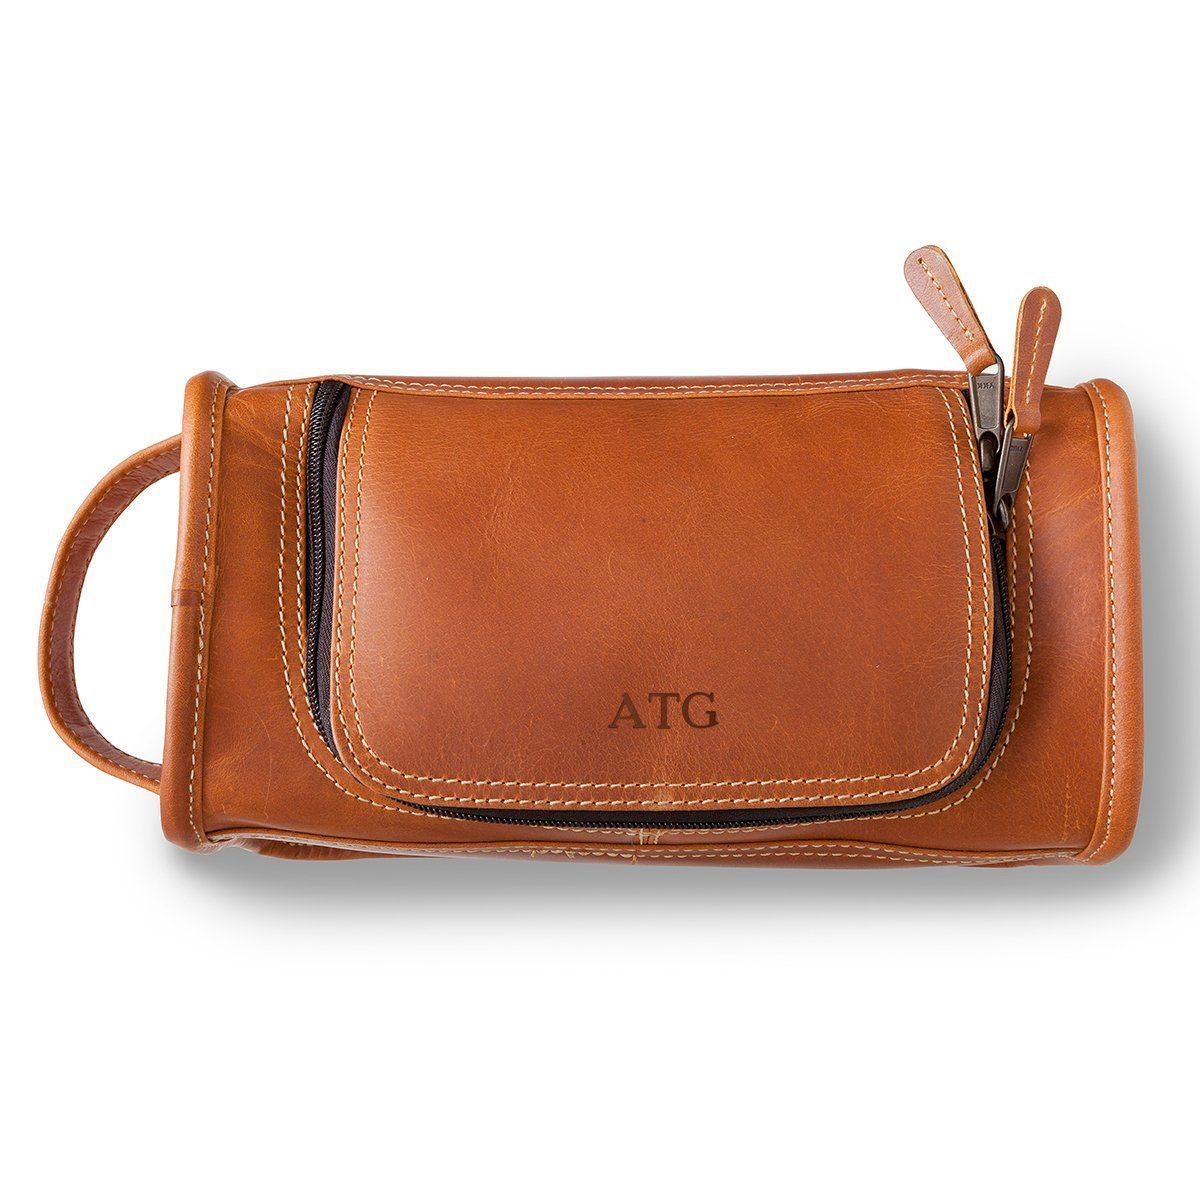 Personalized Tan Distressed Leather Toiletry Bag